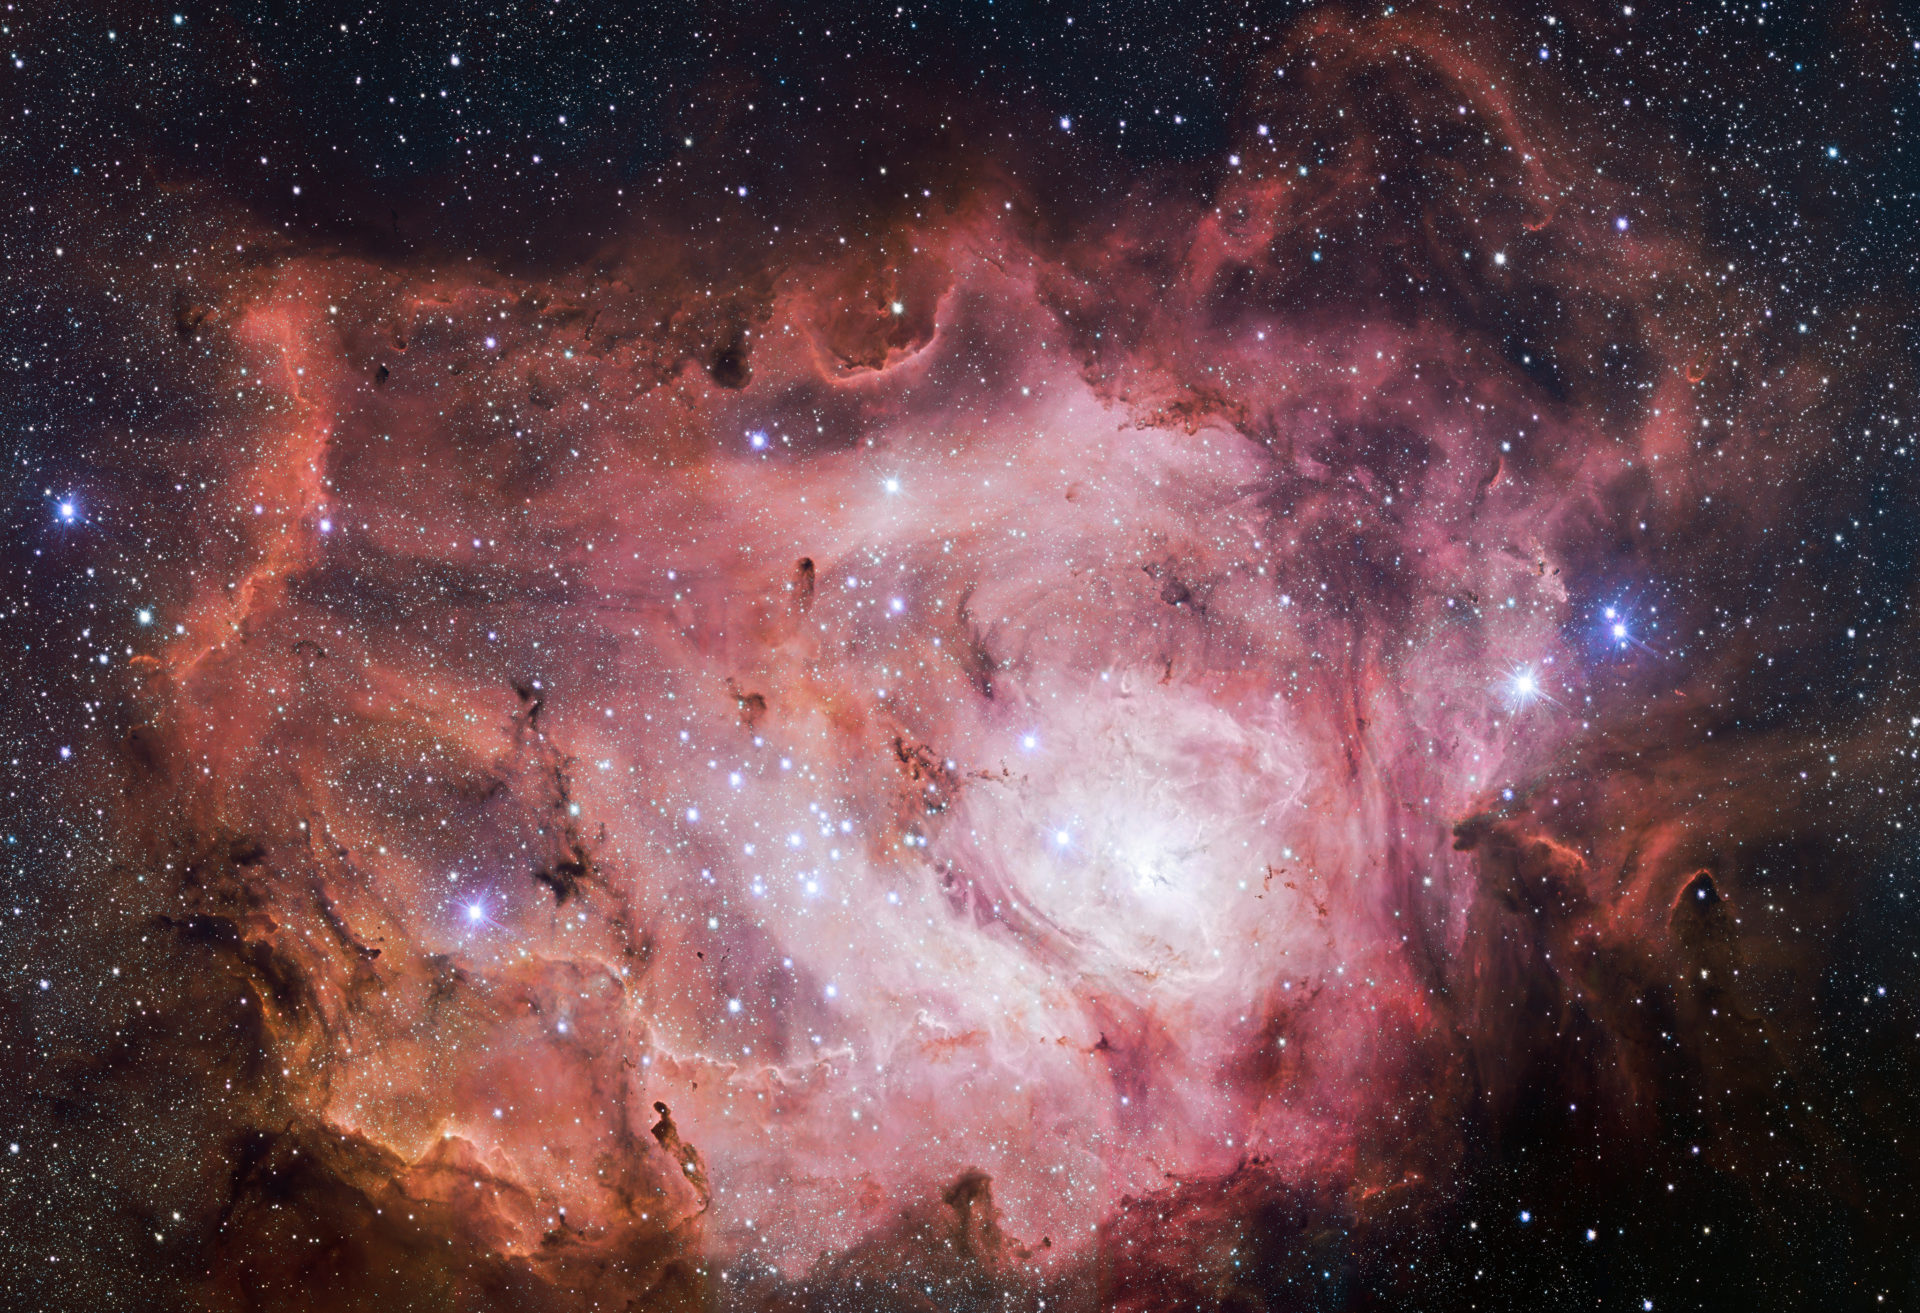 A complex and mesmerizing pink nebula with wisps of red among the stars